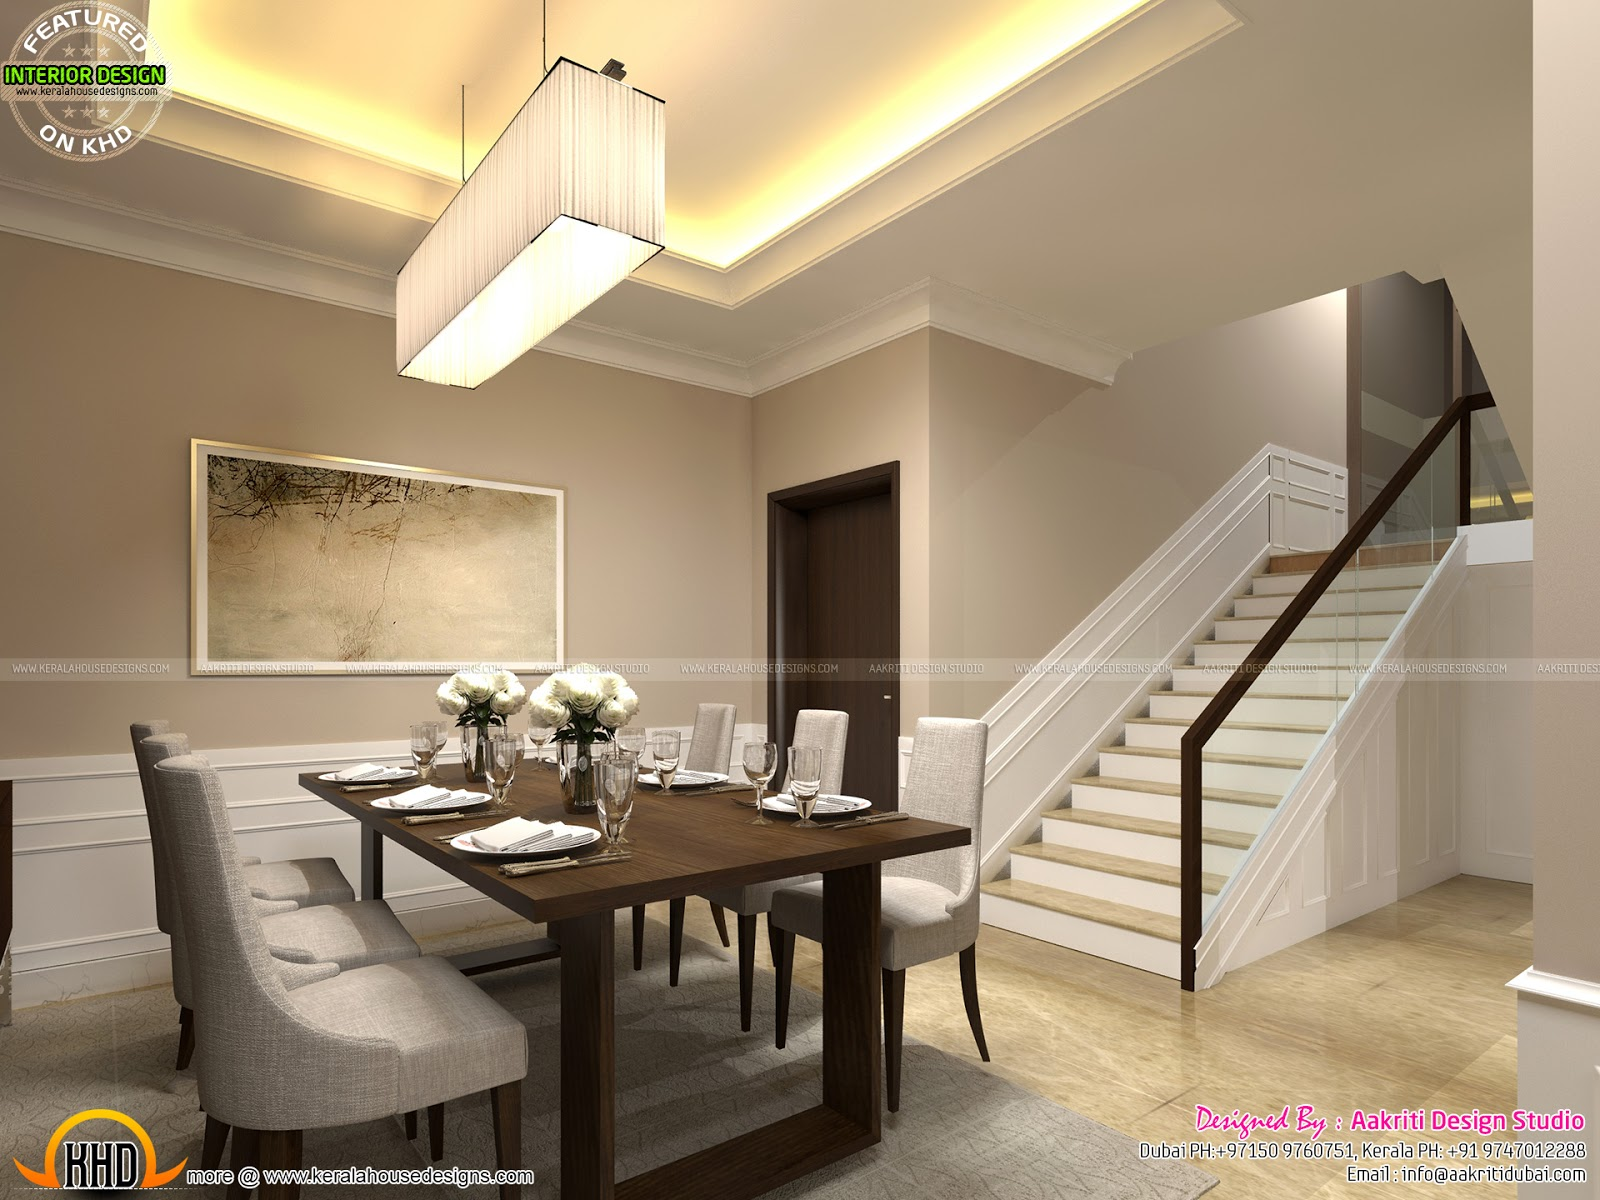 Classic style interior design for living room stair area House model interior design